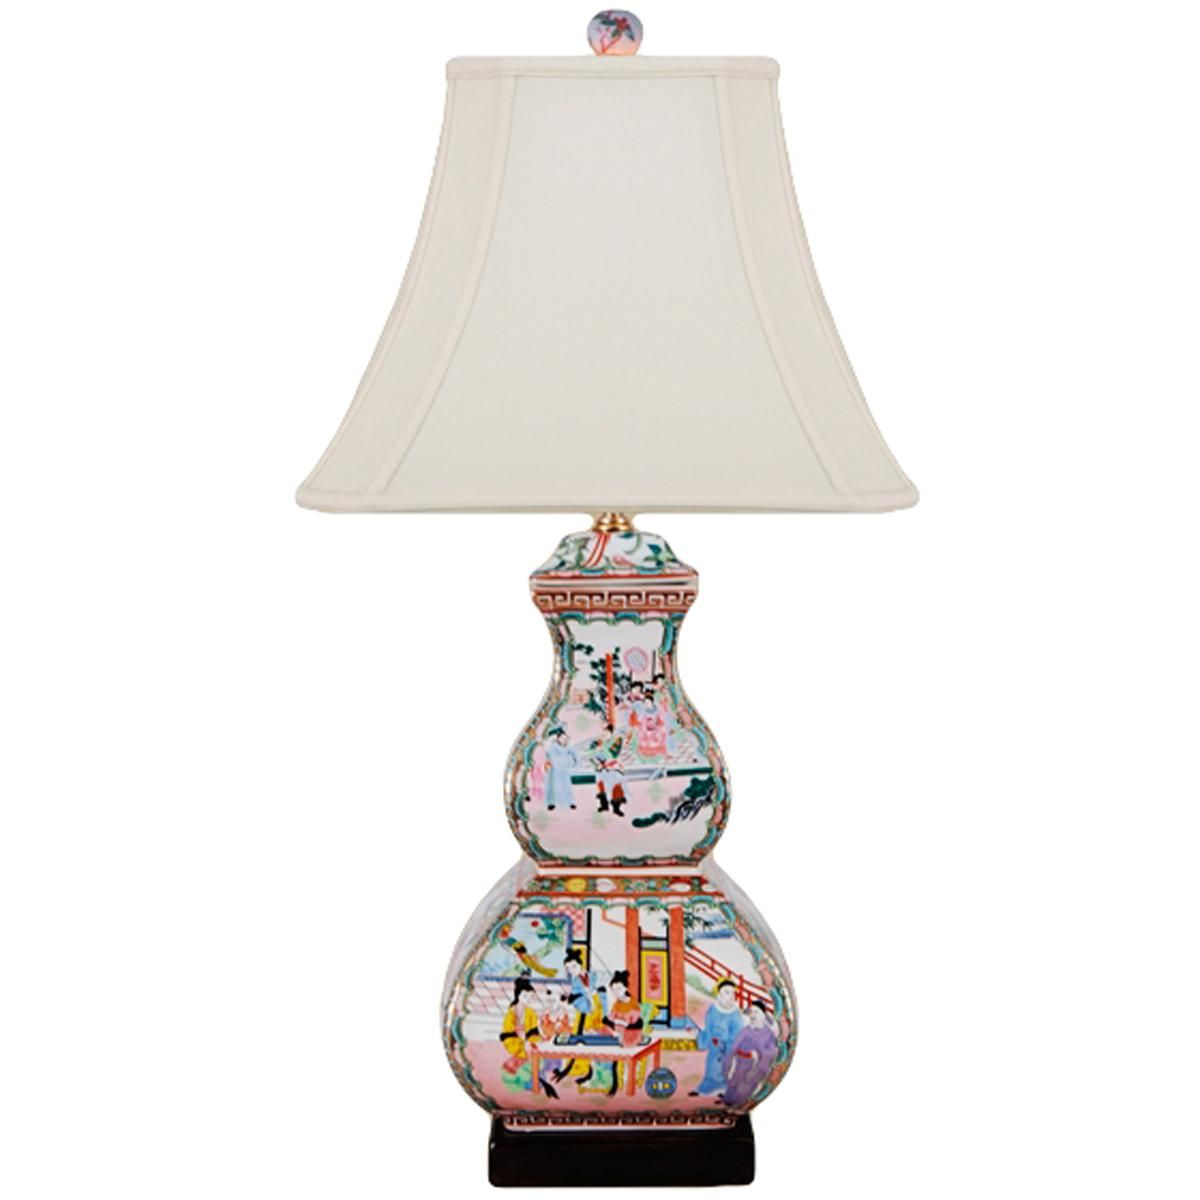 Porcelain Chinoiserie Square Gourd Table Lamp